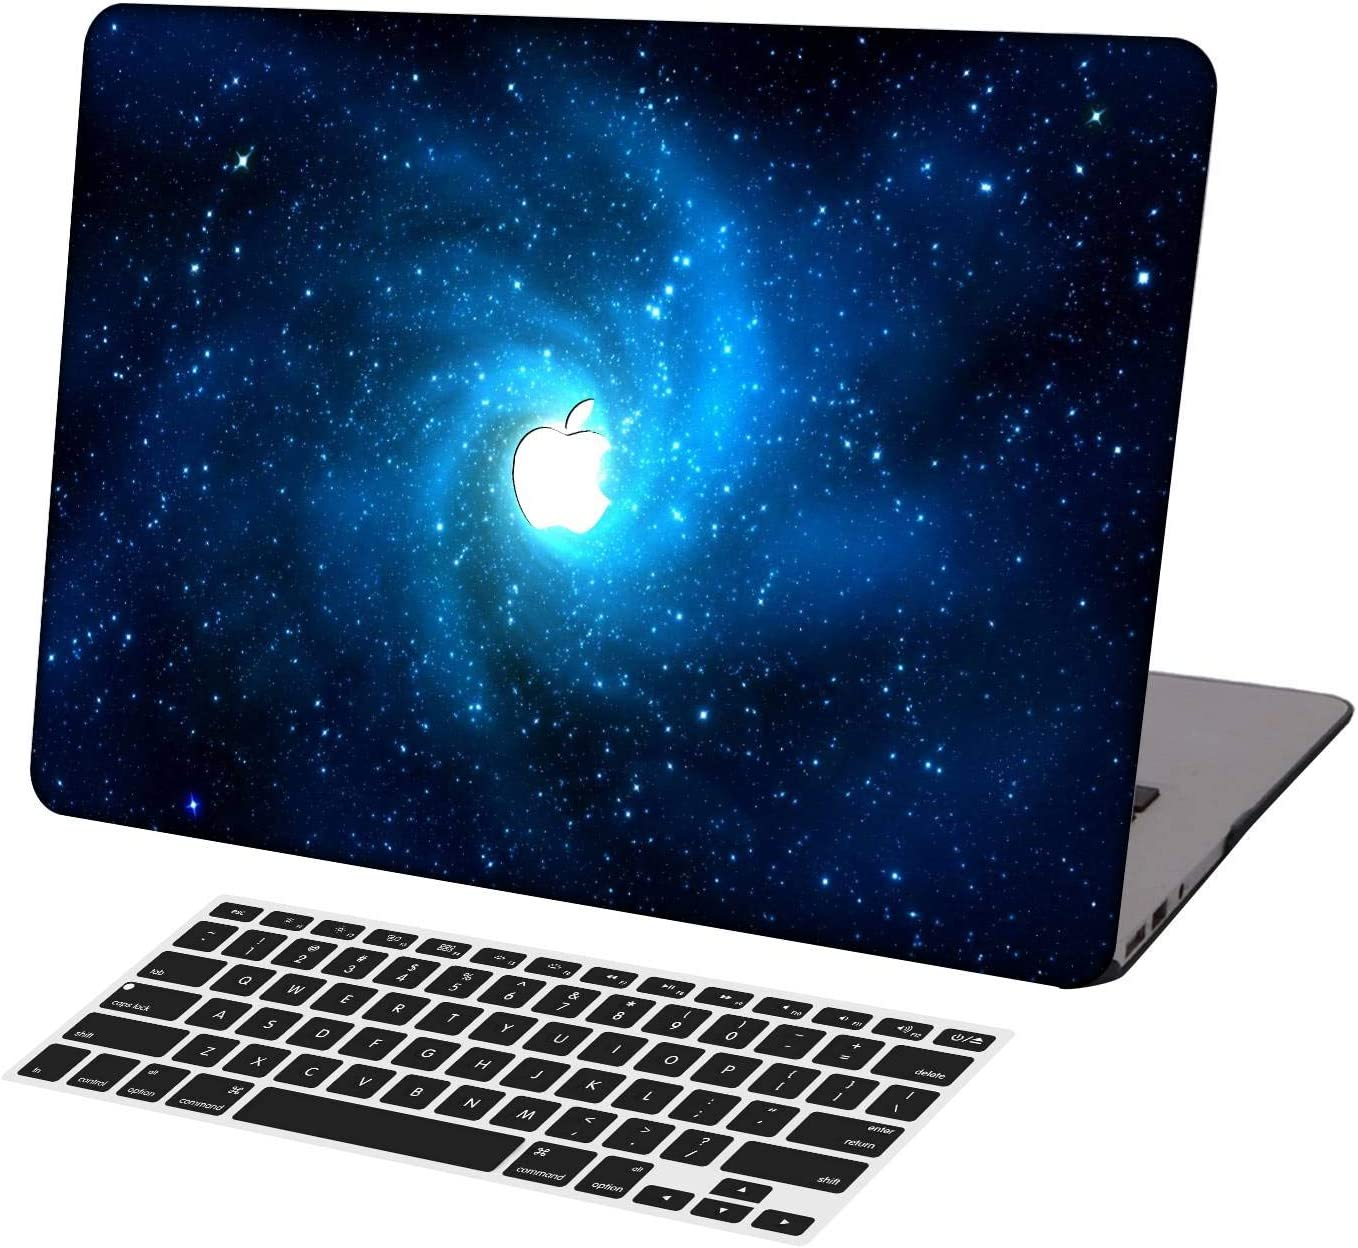 KSK KAISHEK Laptop Case for MacBook Air 13 inch Model A1369/A466,Plastic Ultra Slim Light Hard Shell Case Cover Keyboard Cover Compatible MacBook Air 13 Inch No Touch ID,Mysteries Stars